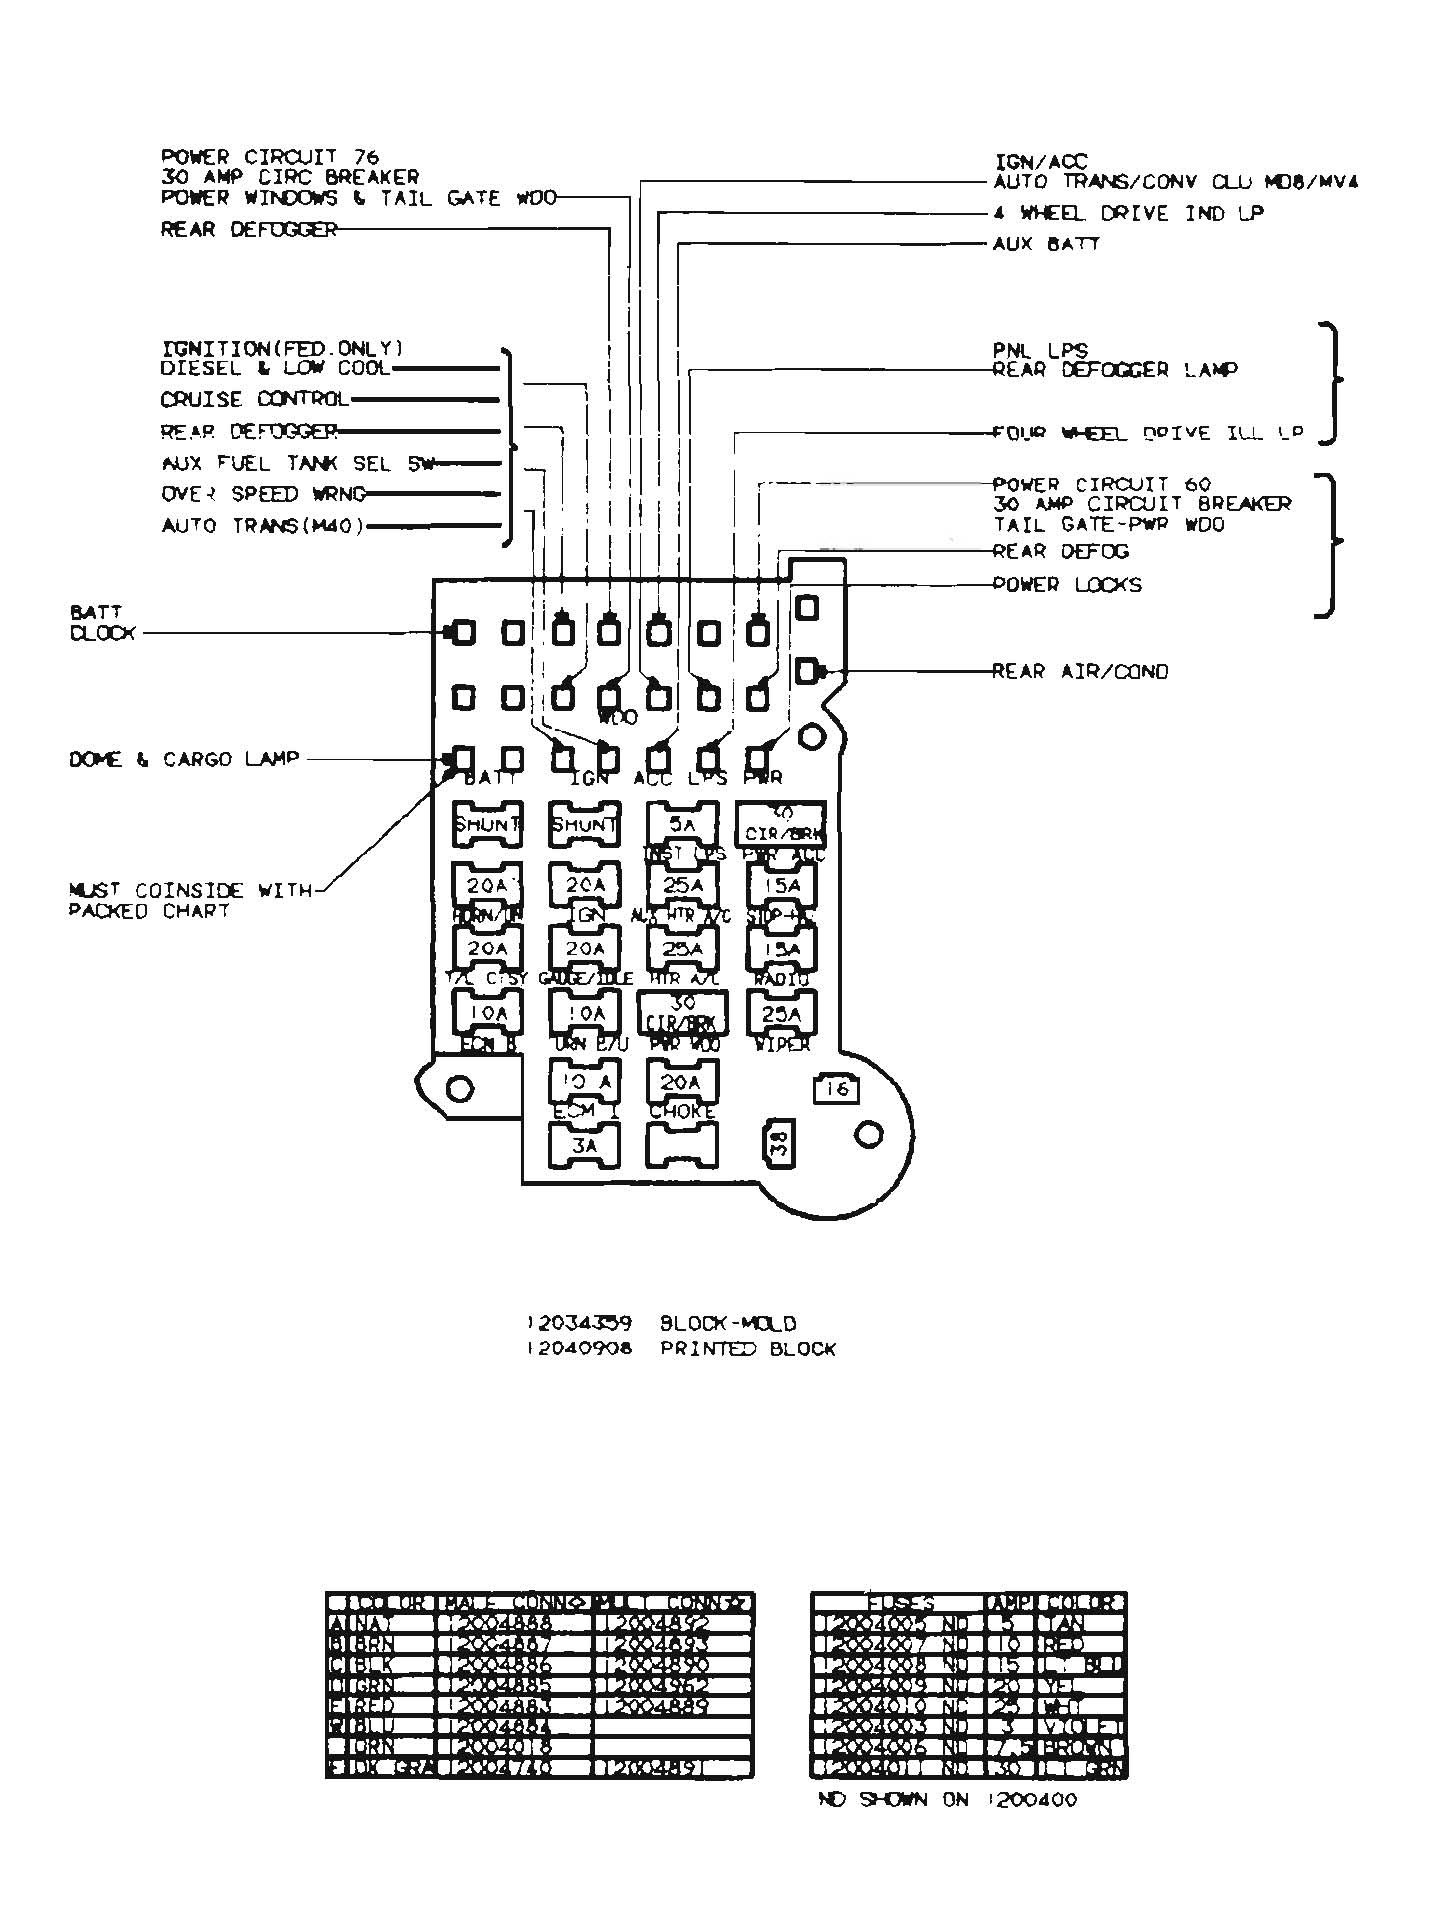 hight resolution of 91 gmc 1500 fuse diagram wiring diagram yer 91 gmc 1500 fuse diagram